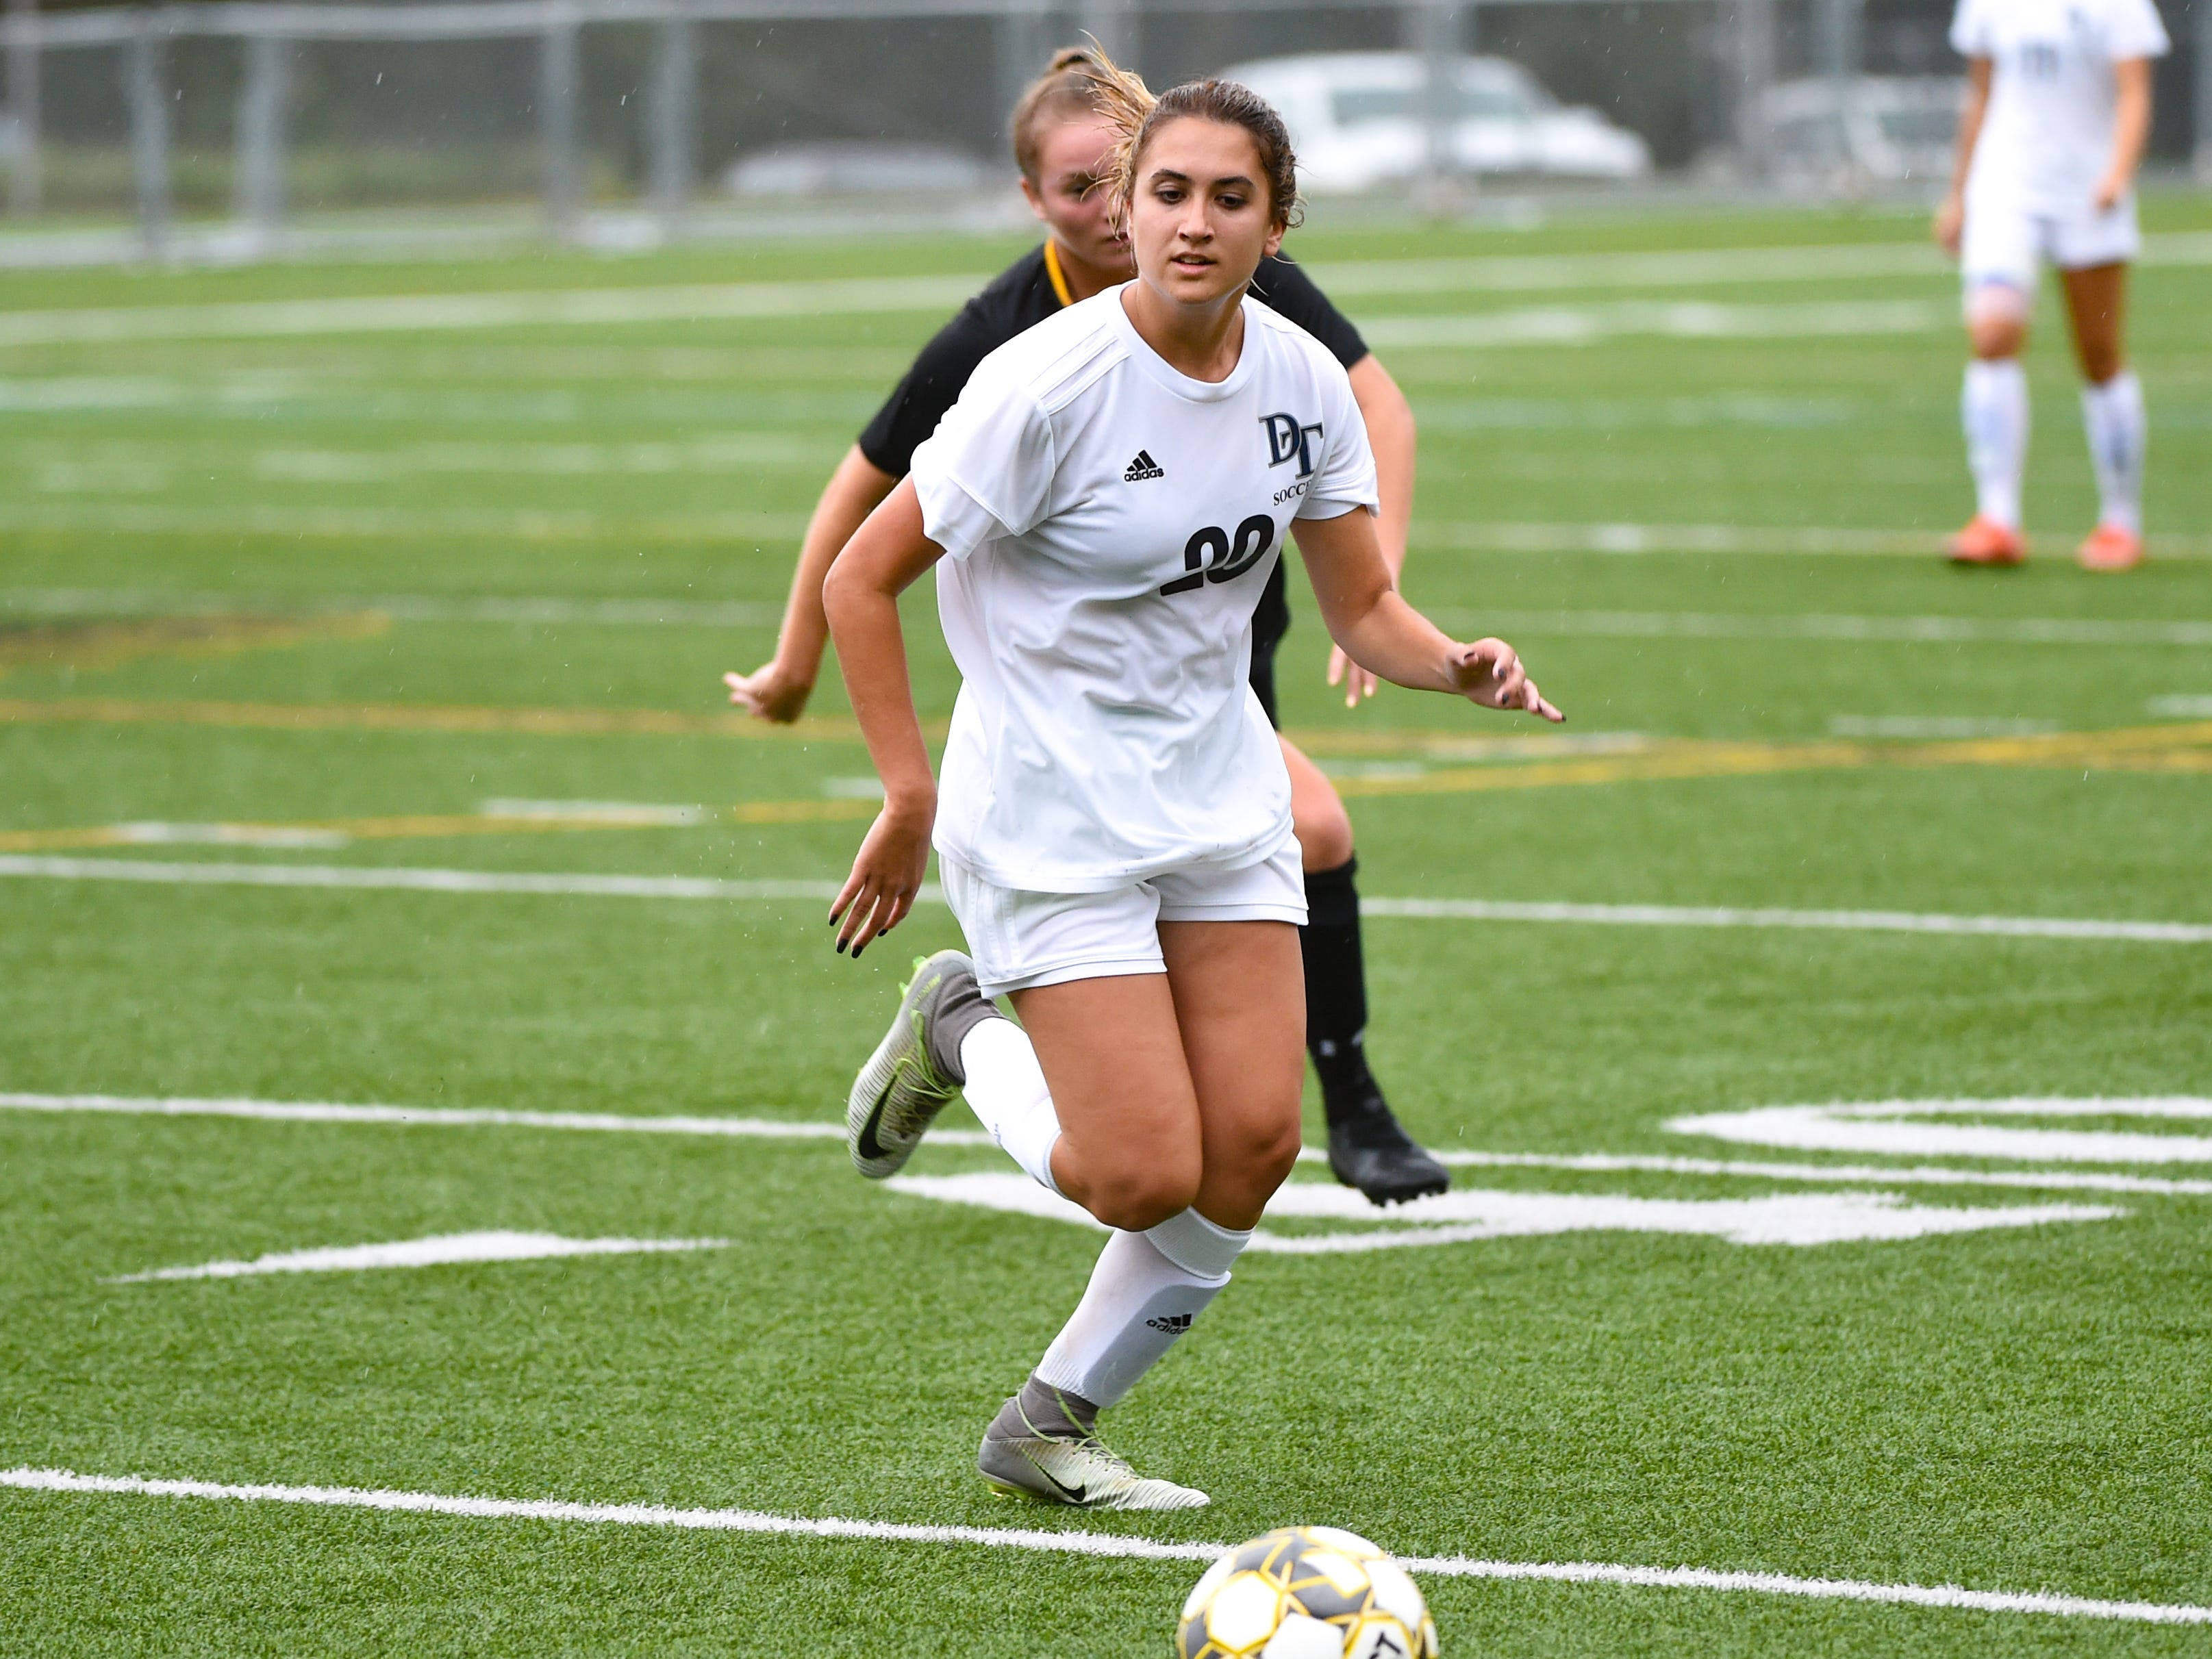 Dallastown's Jordan Lese (20) looks to stop the ball from going out of bounds during the girls soccer game between Red Lion and Dallastown, October 11, 2018. The Lady Lions beat the Wildcats 4-0.